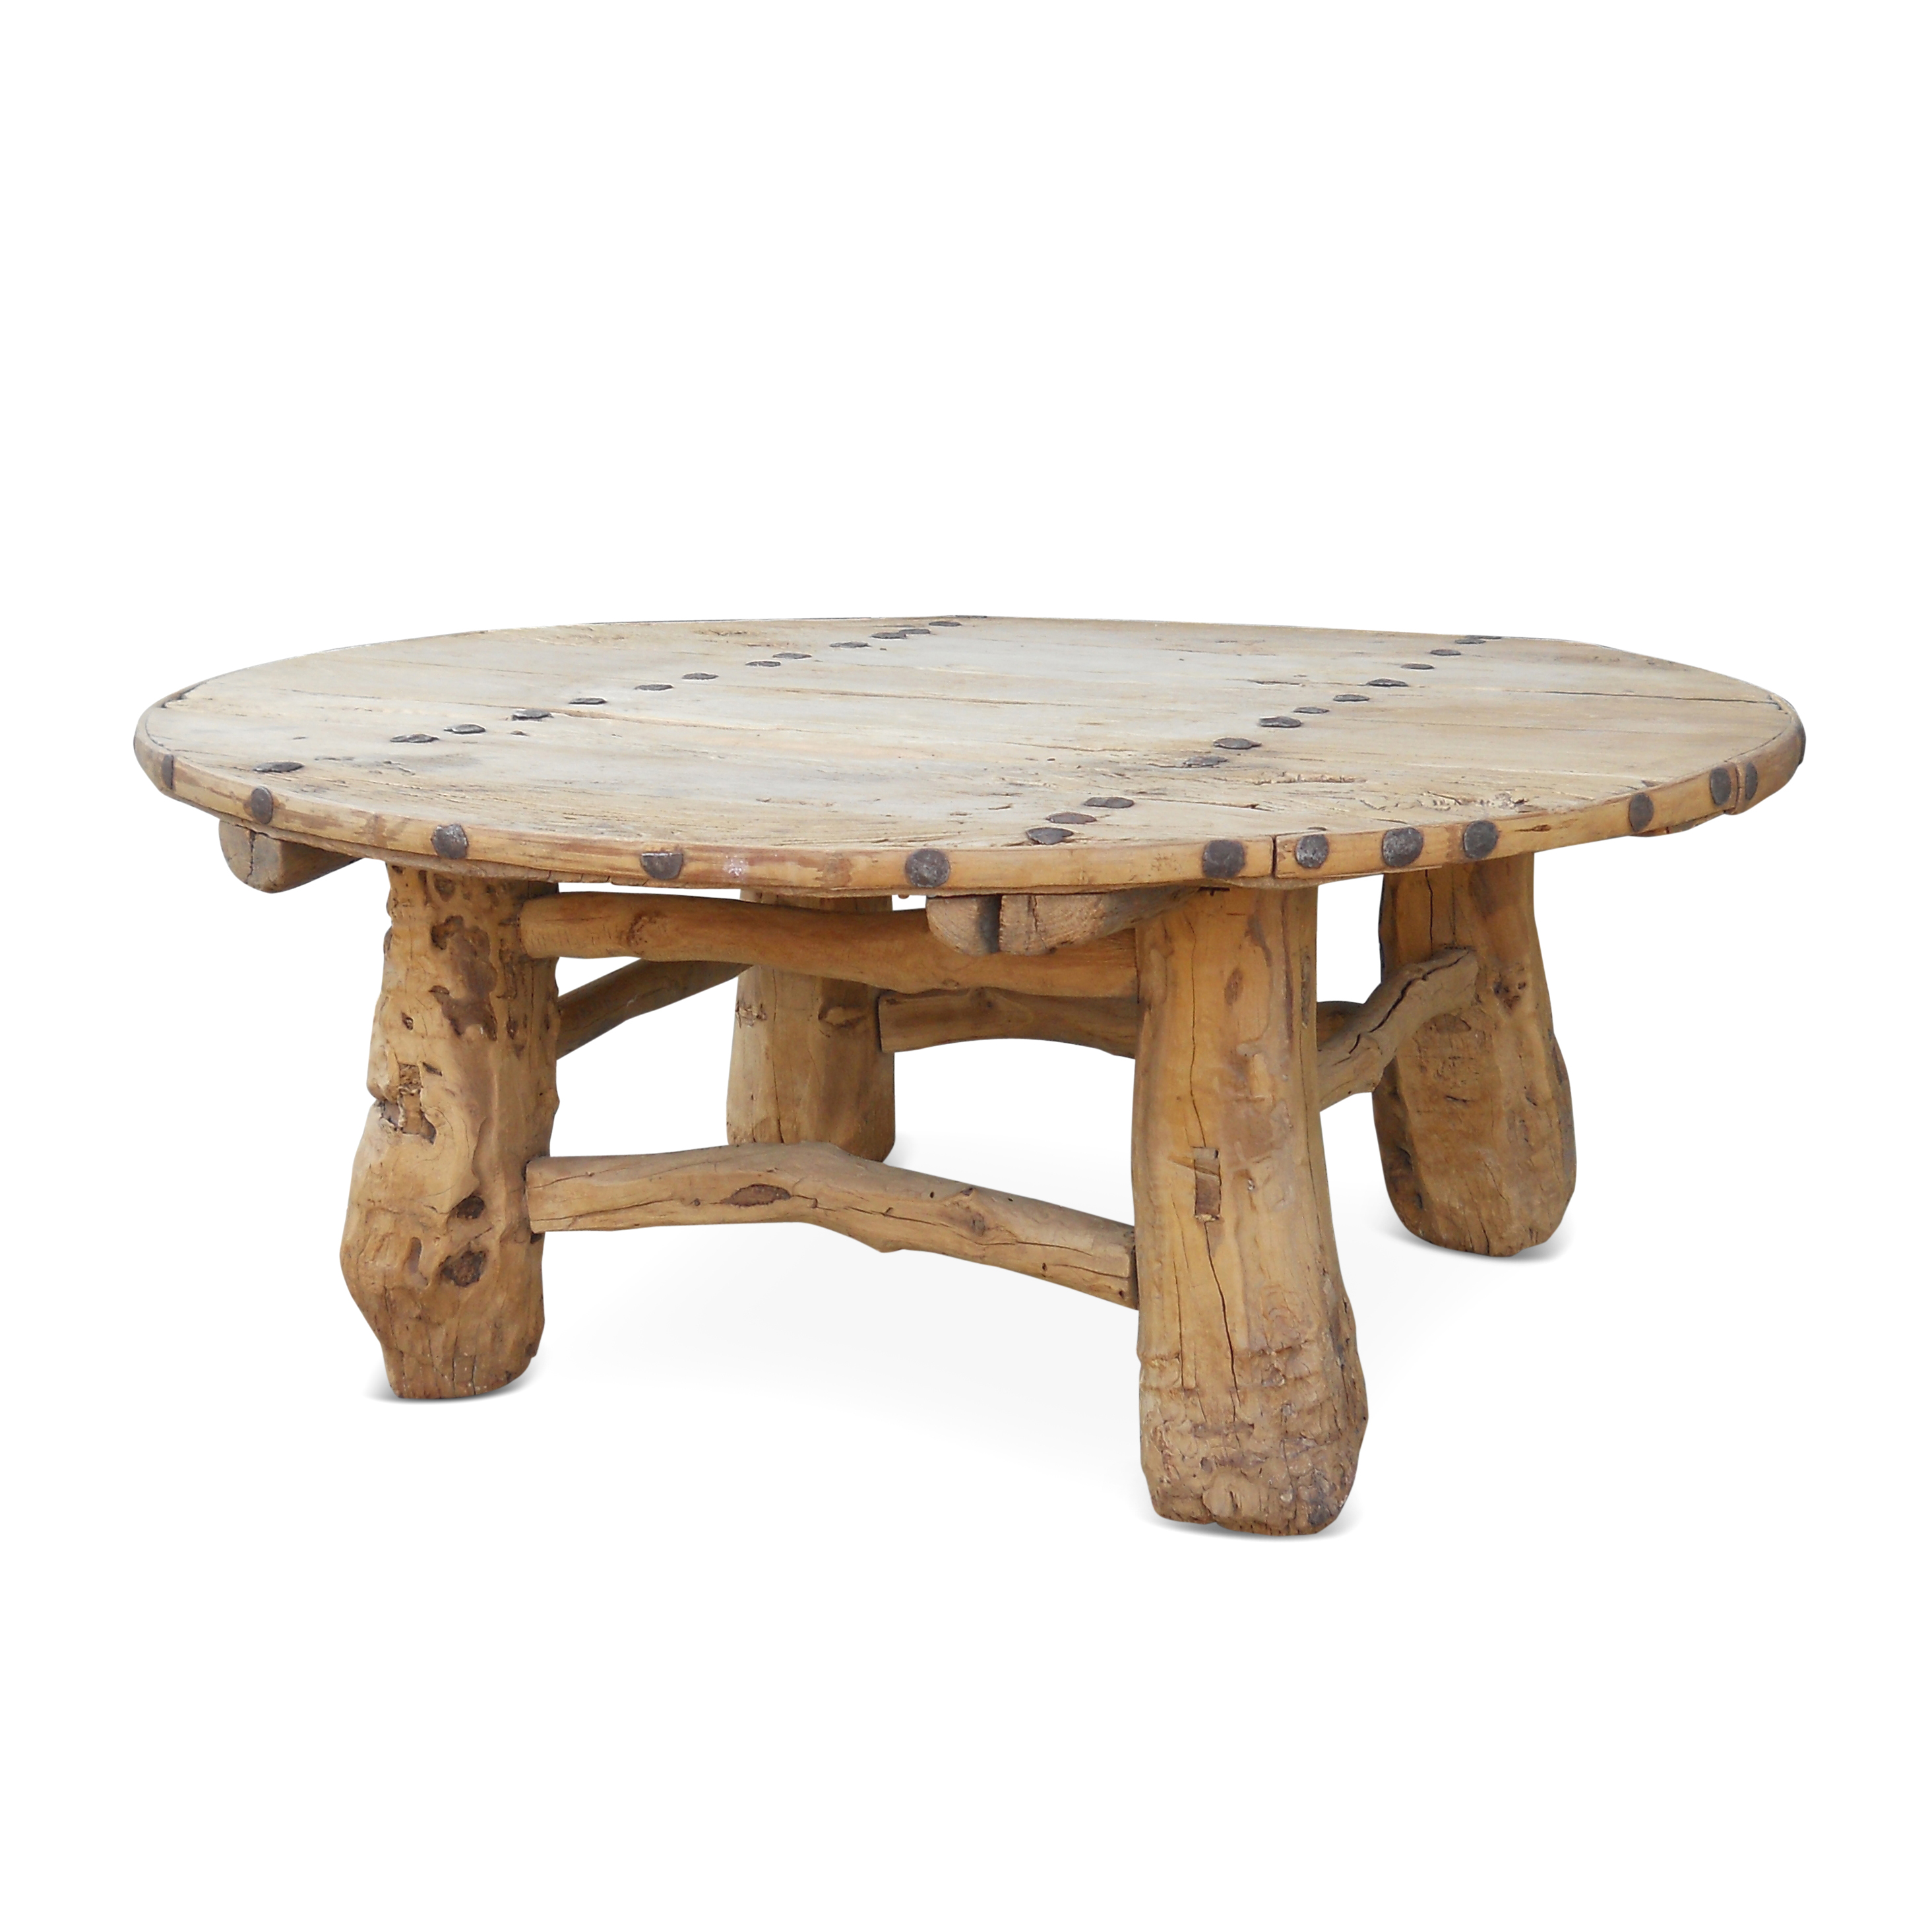 round-wooden-coffee-table-round-wood-coffee-table-with-hammered-nail-head-detail-circle-coffee-tables-furniture-2016 (Image 9 of 10)